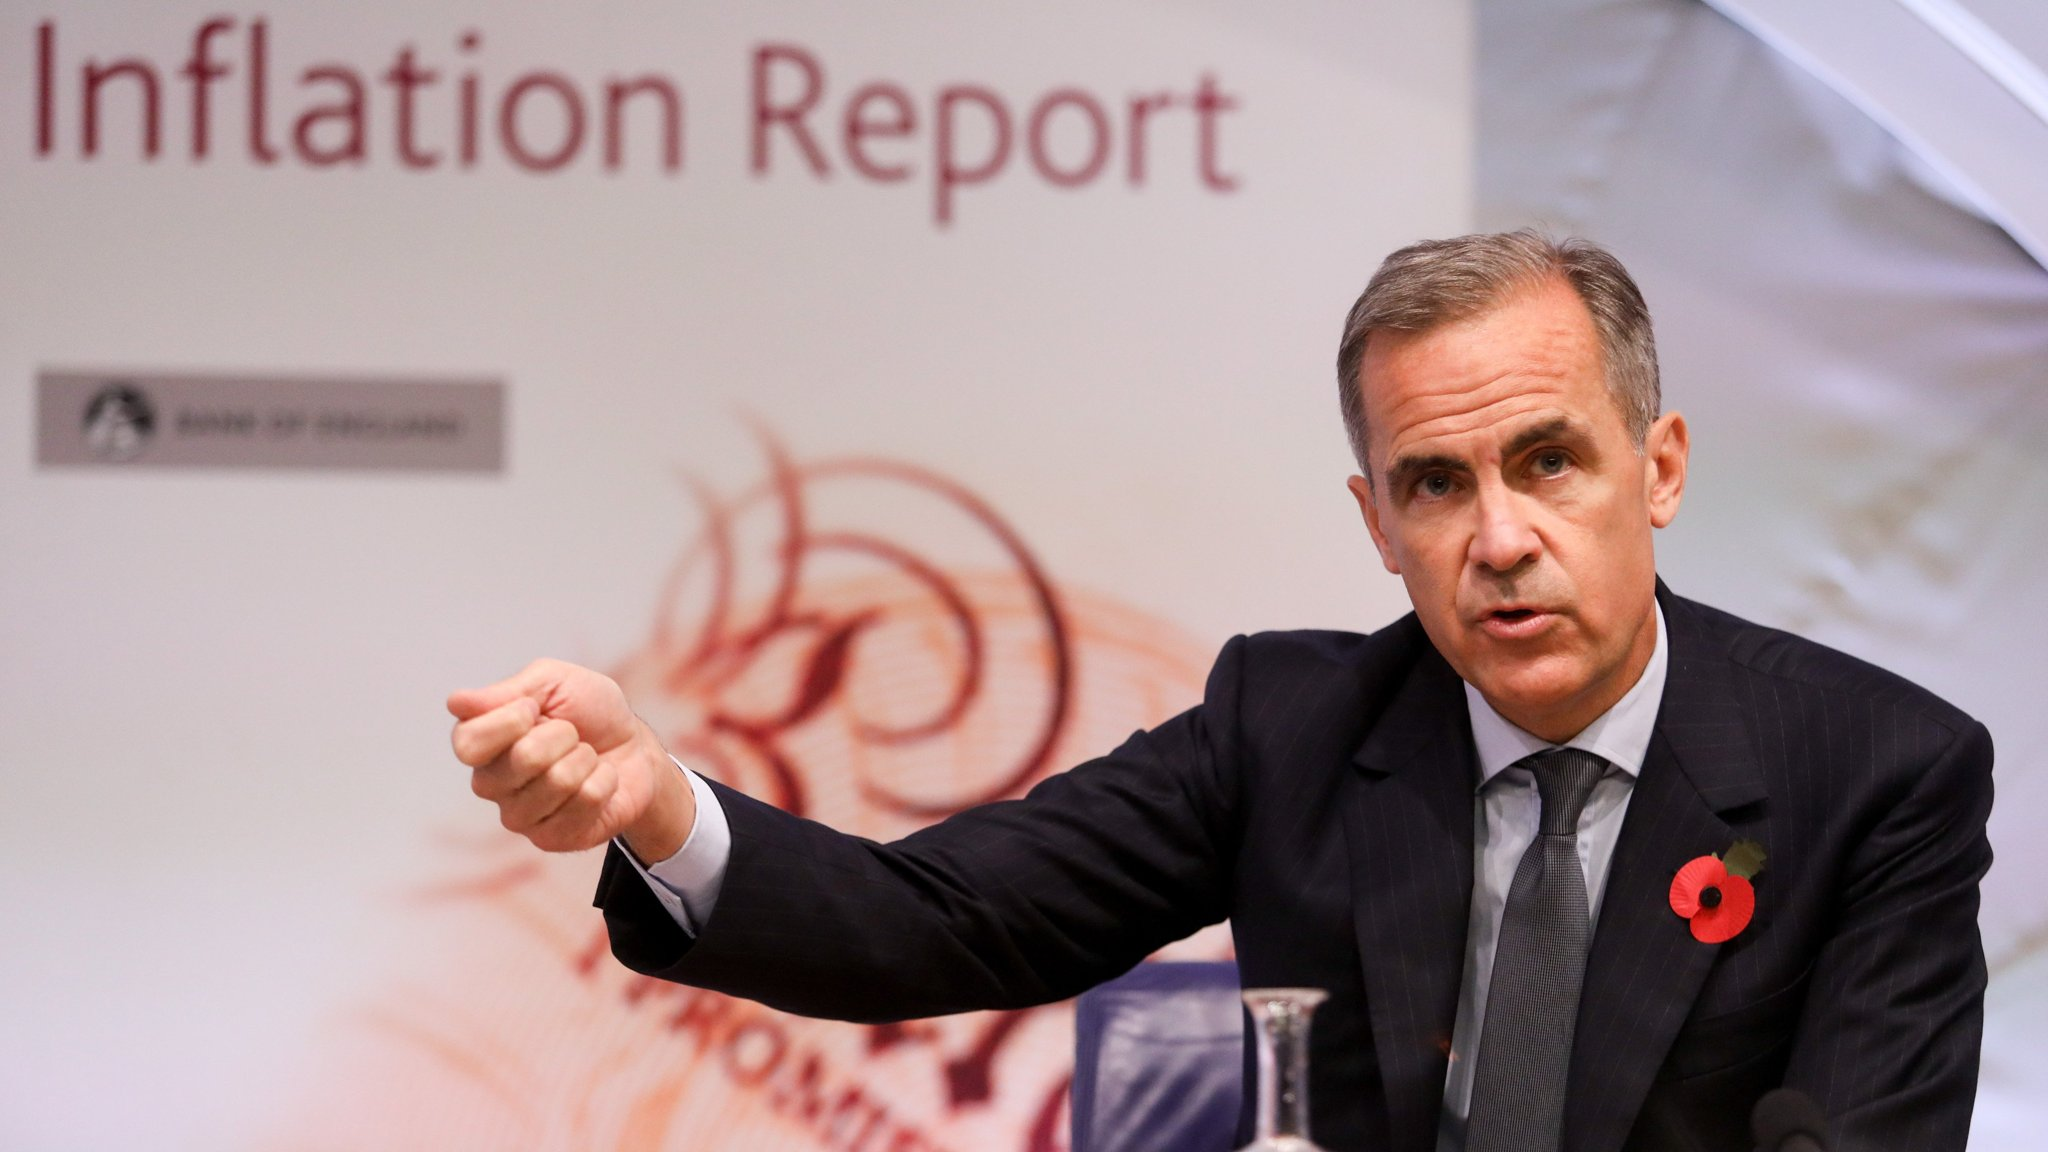 BoE Inflation report - Econ Alerts